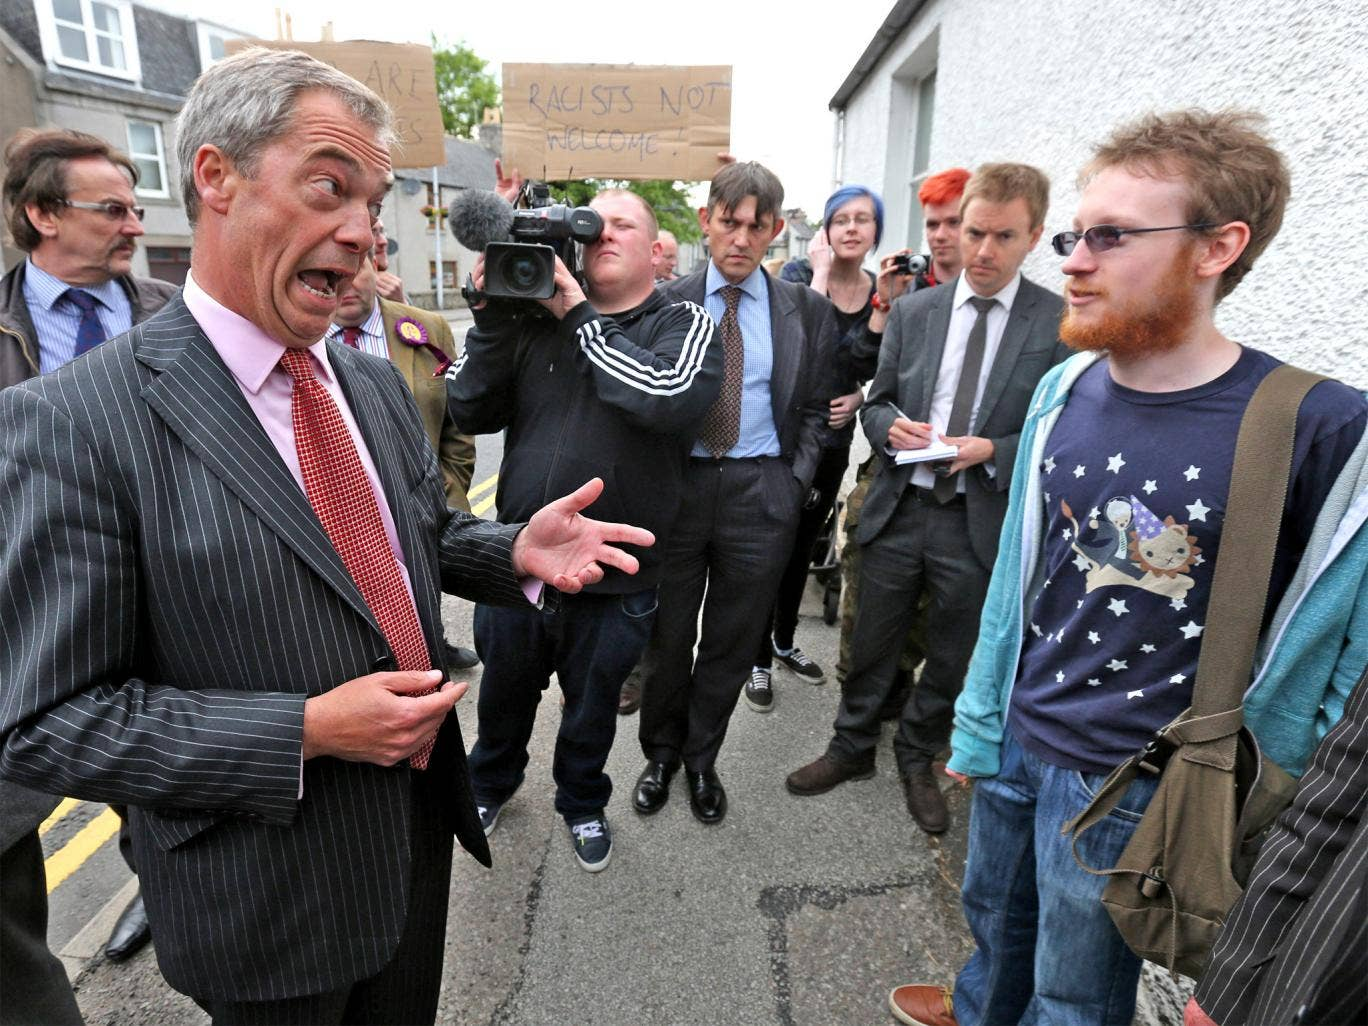 UKIP Leader Nigel Farage speaks to the cola-throwing protester moments before the incident